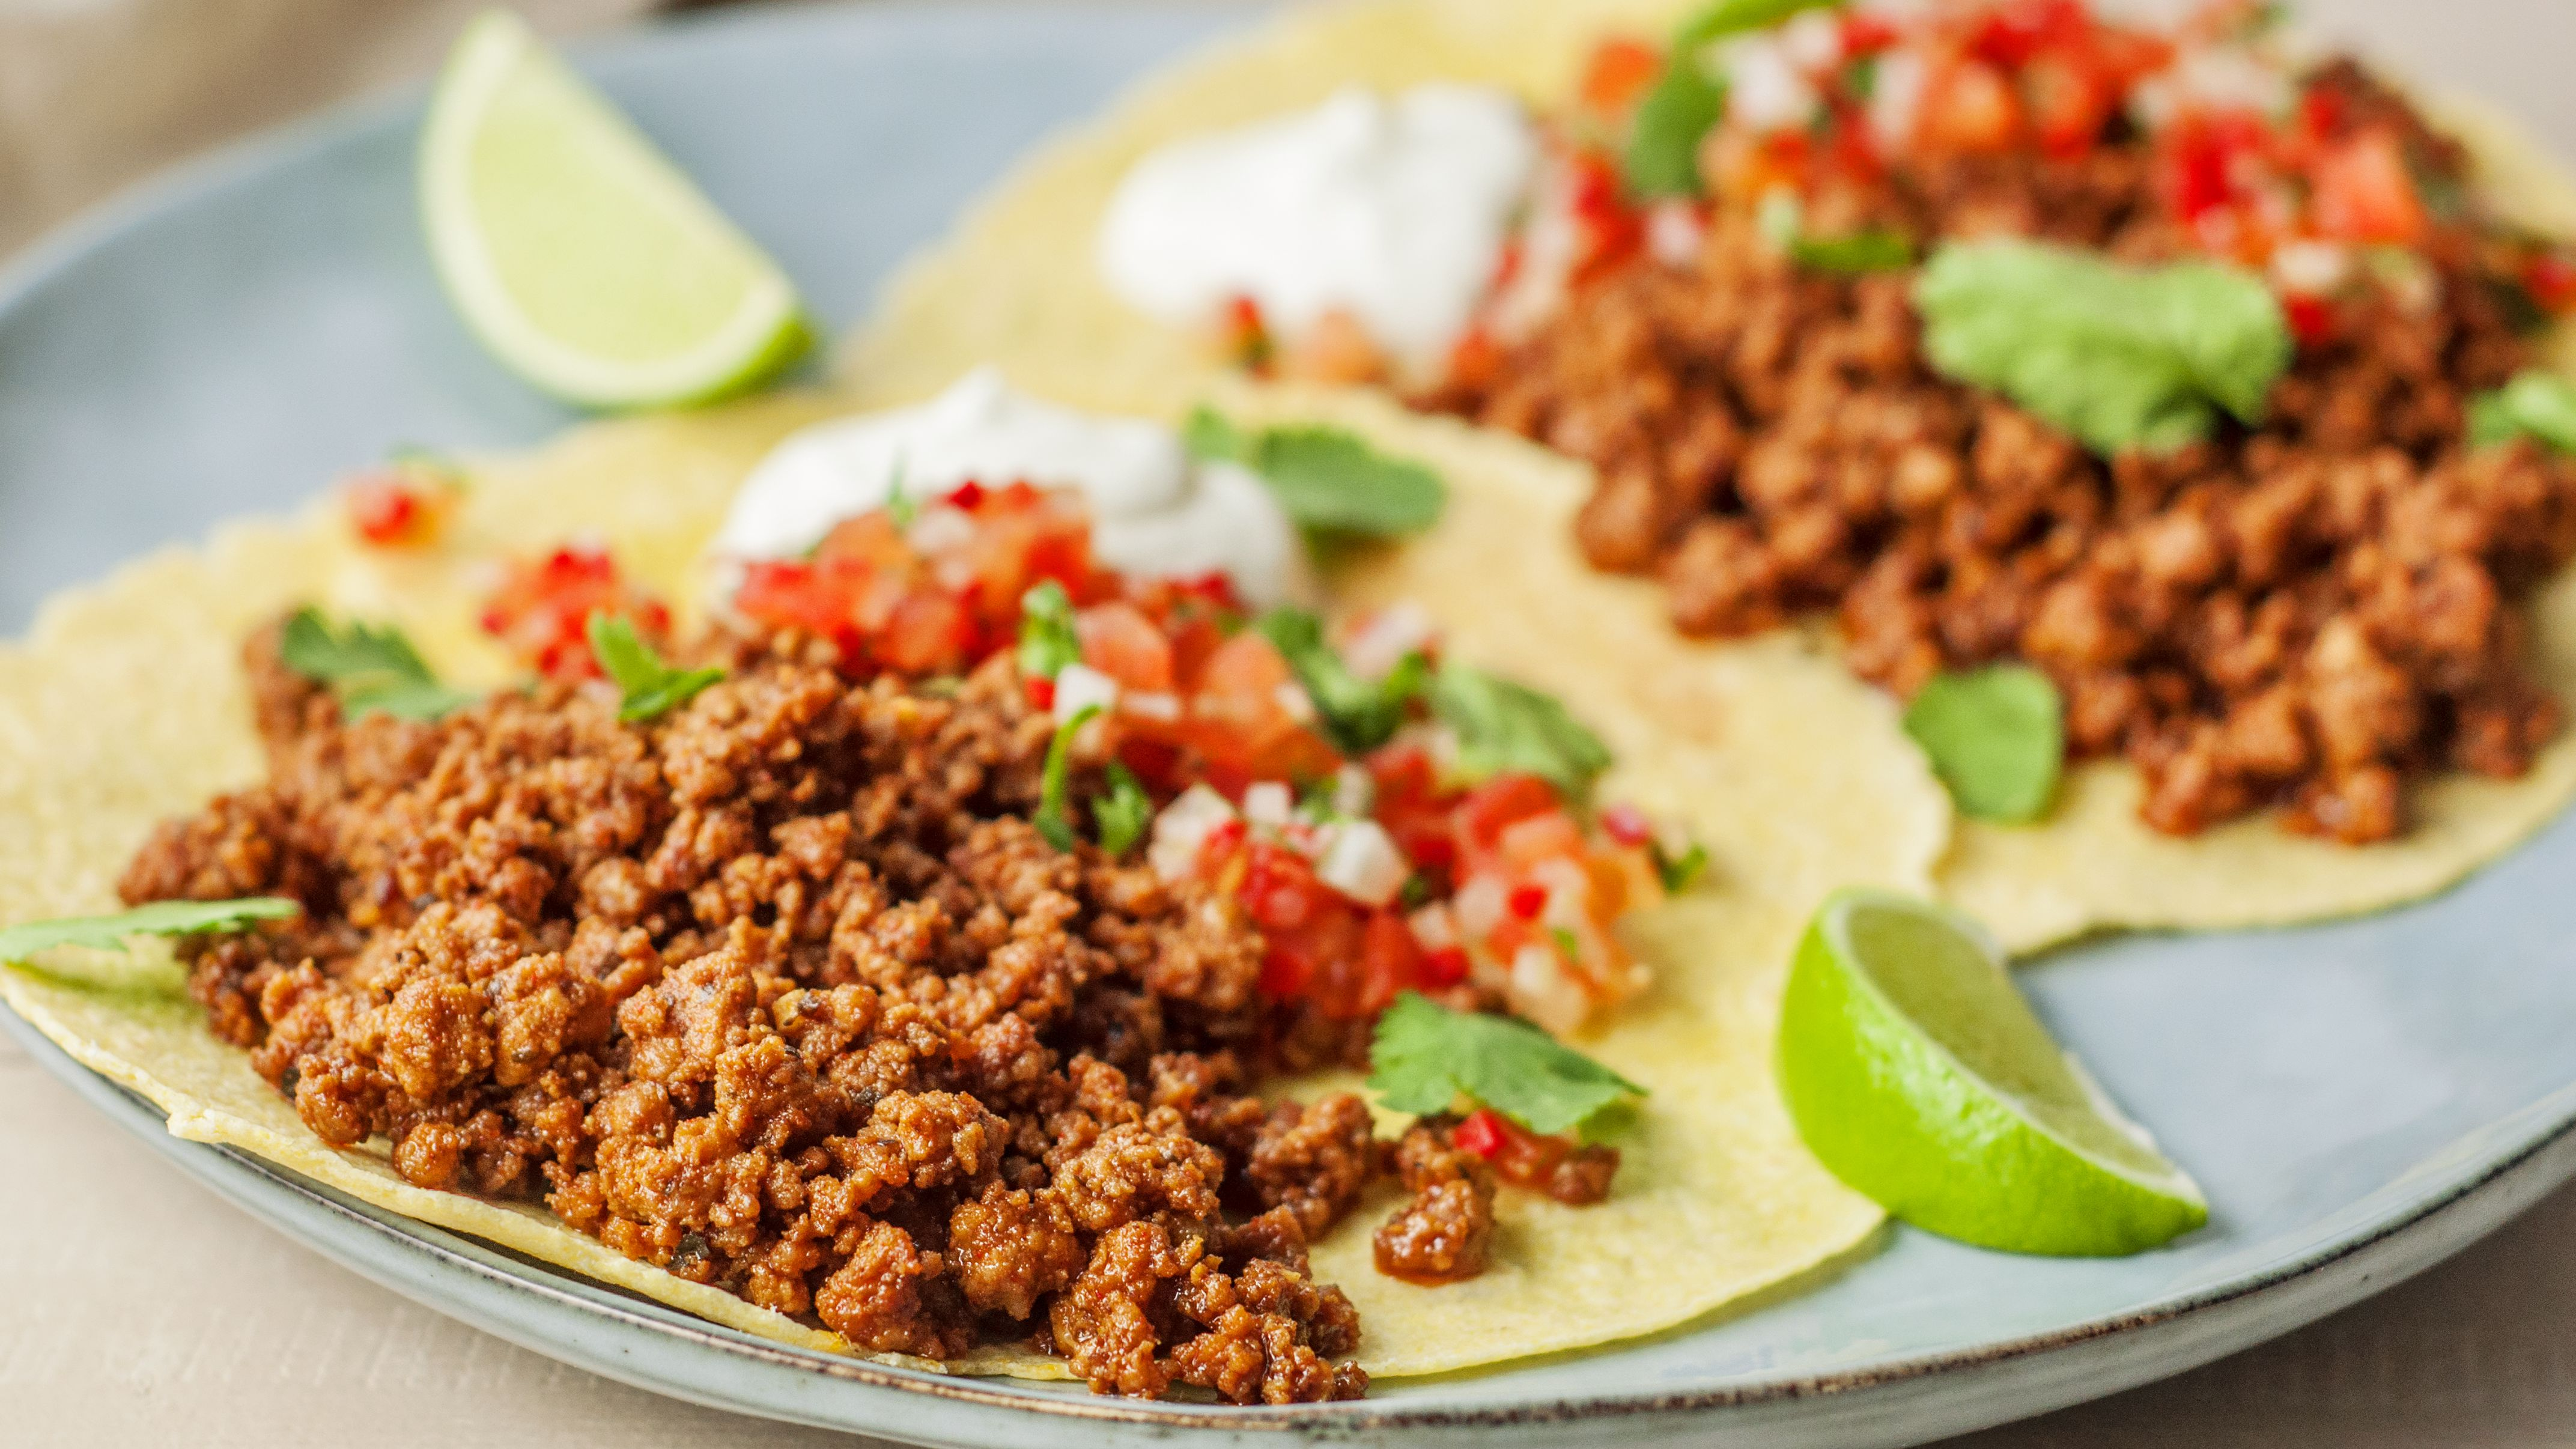 How to Make and Use Mexican Chorizo at Home